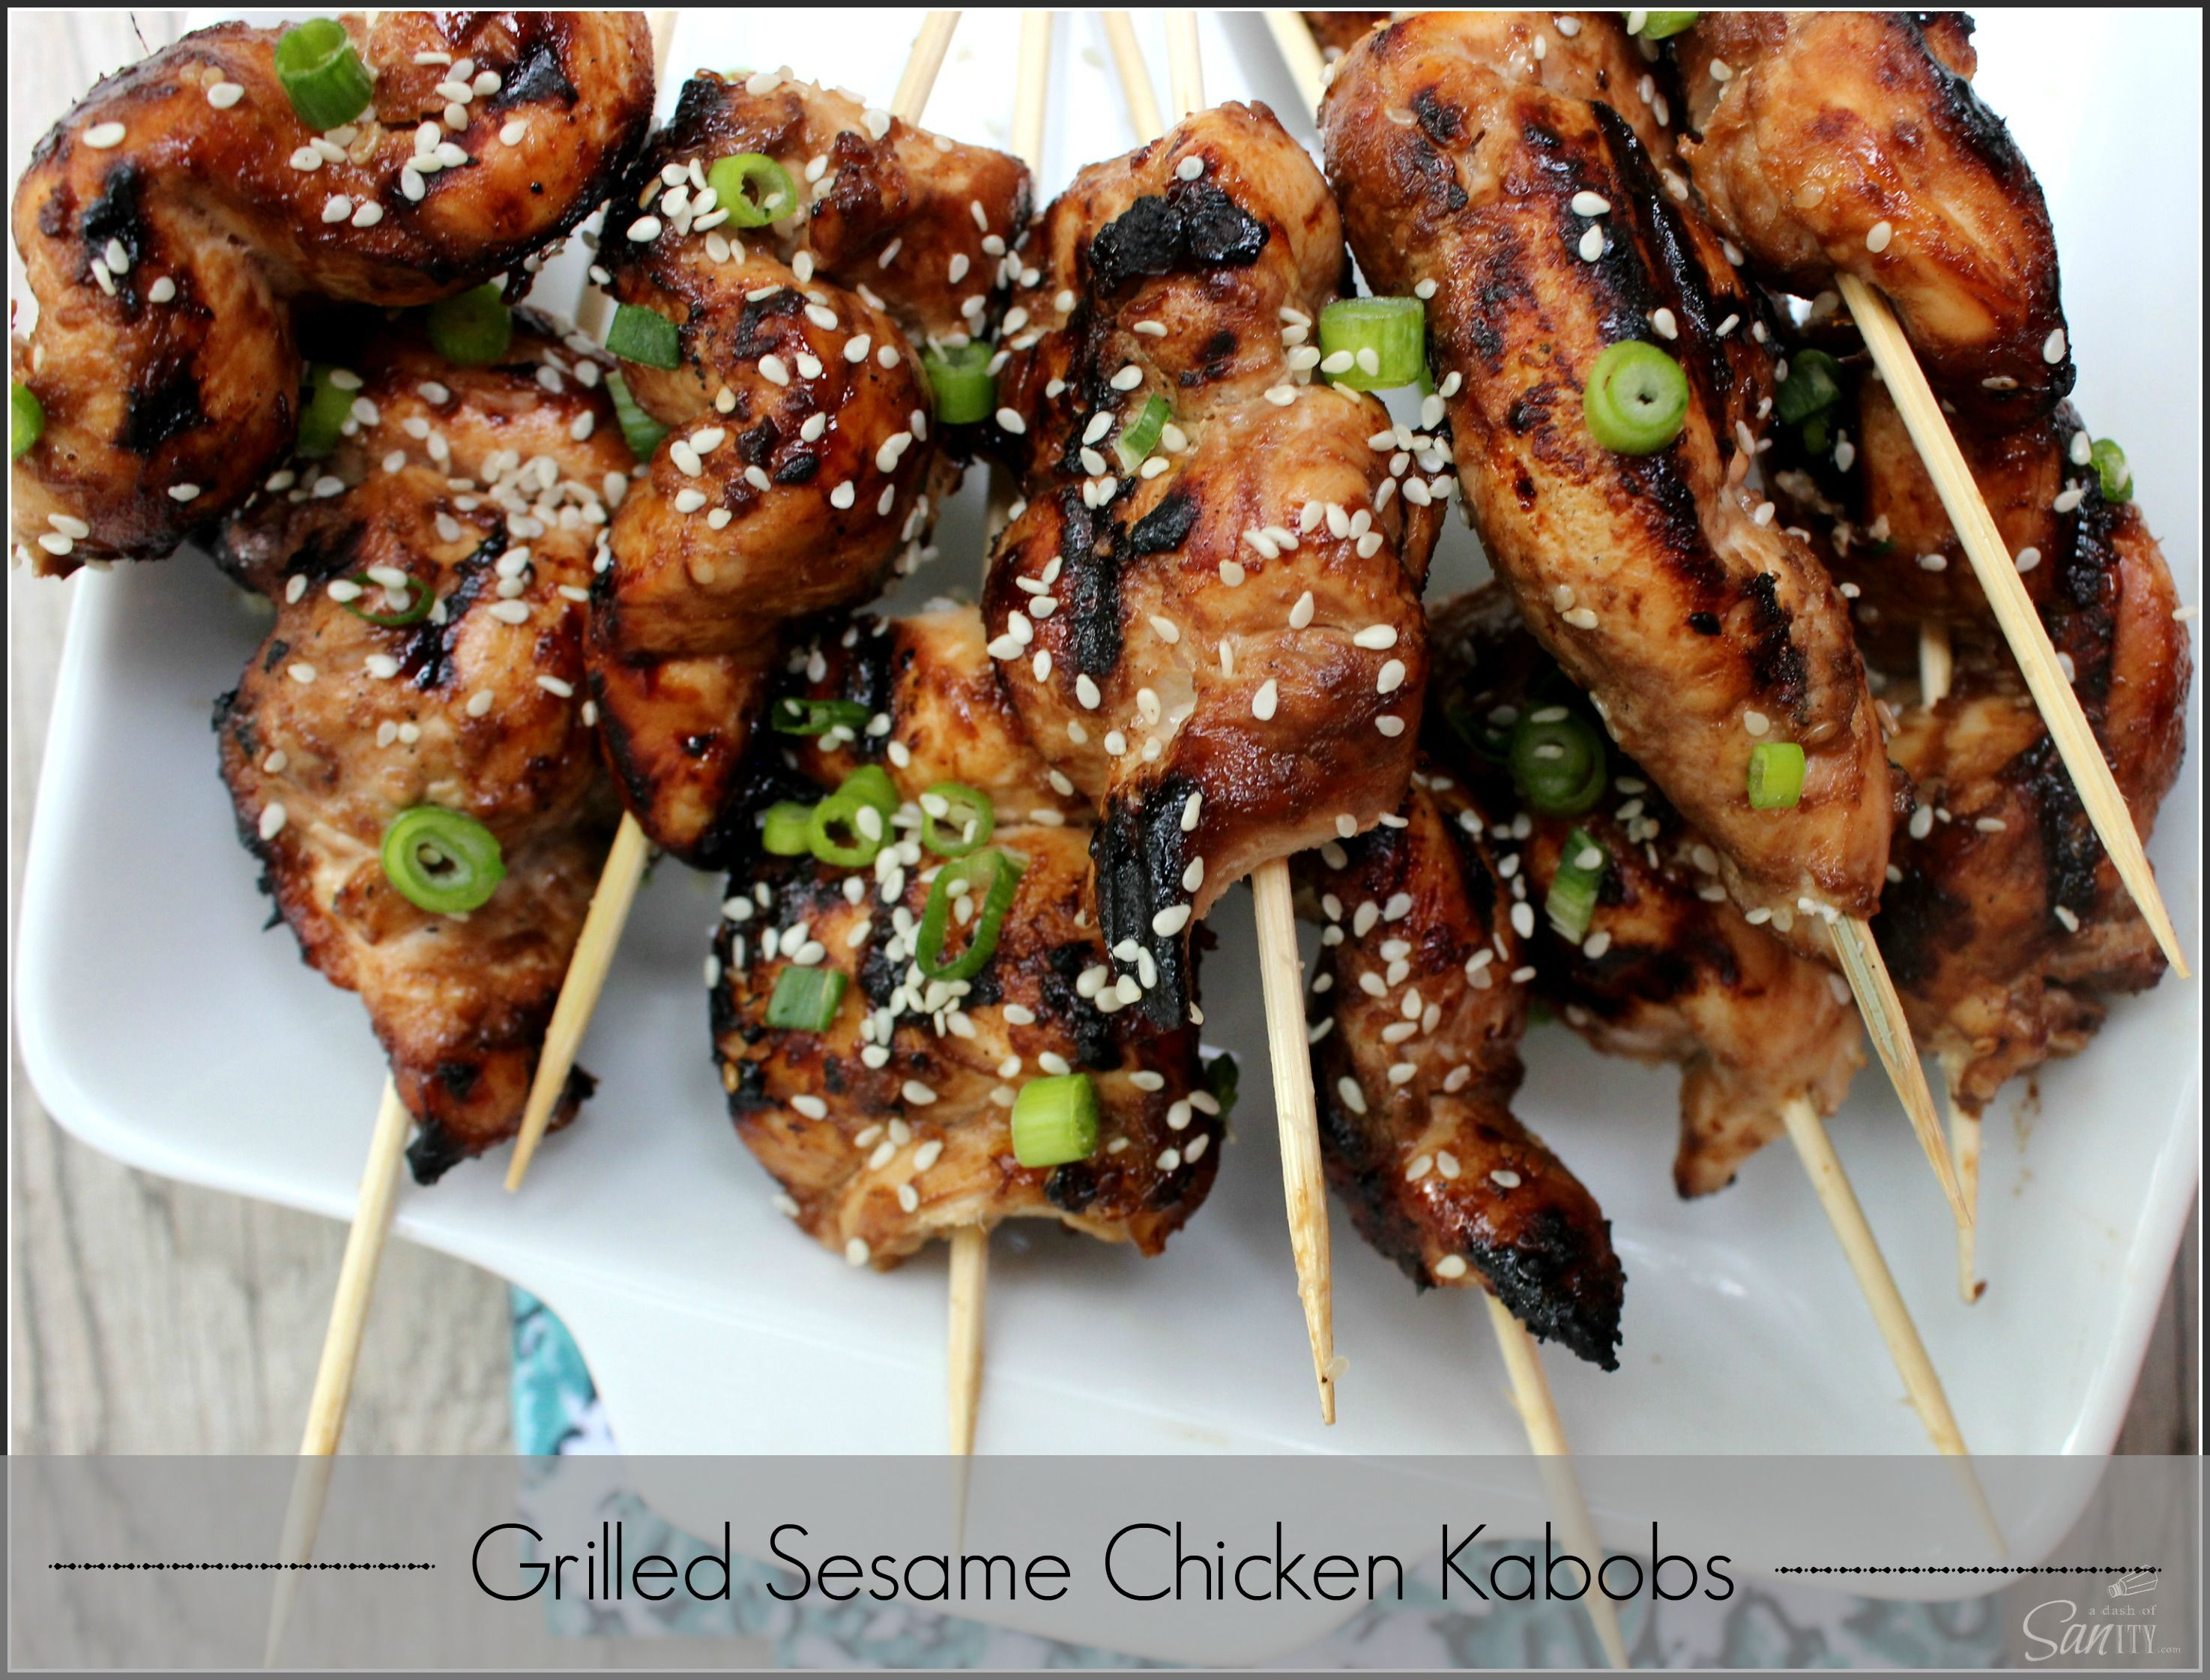 How long do i grill chicken kabobs - Grilled Sesame Chicken Kabobs Healthier Version Of Our Favorite Chinese Take Out